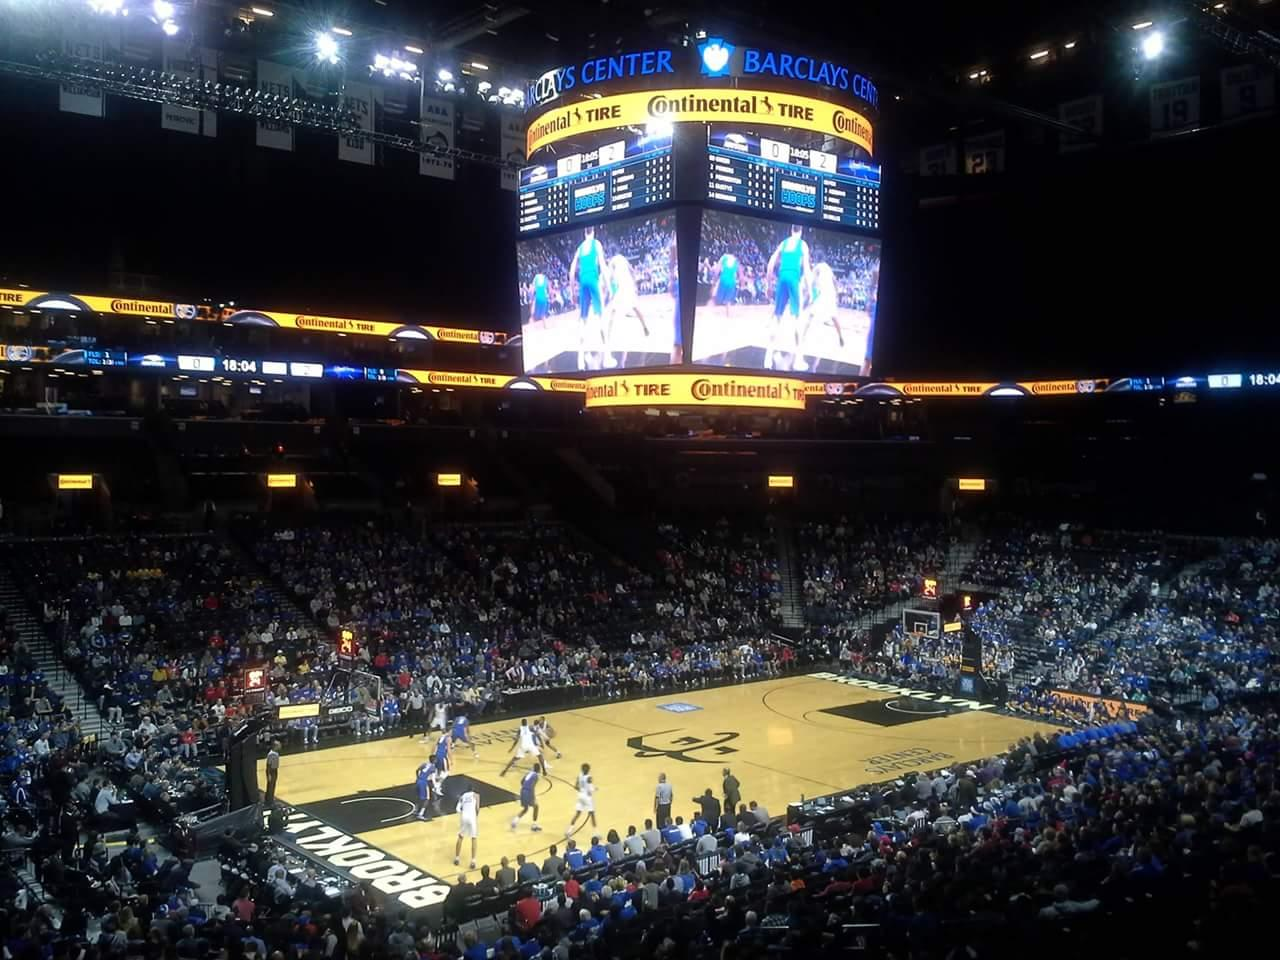 Barclays Center Section 111 Row 7 Seat 18